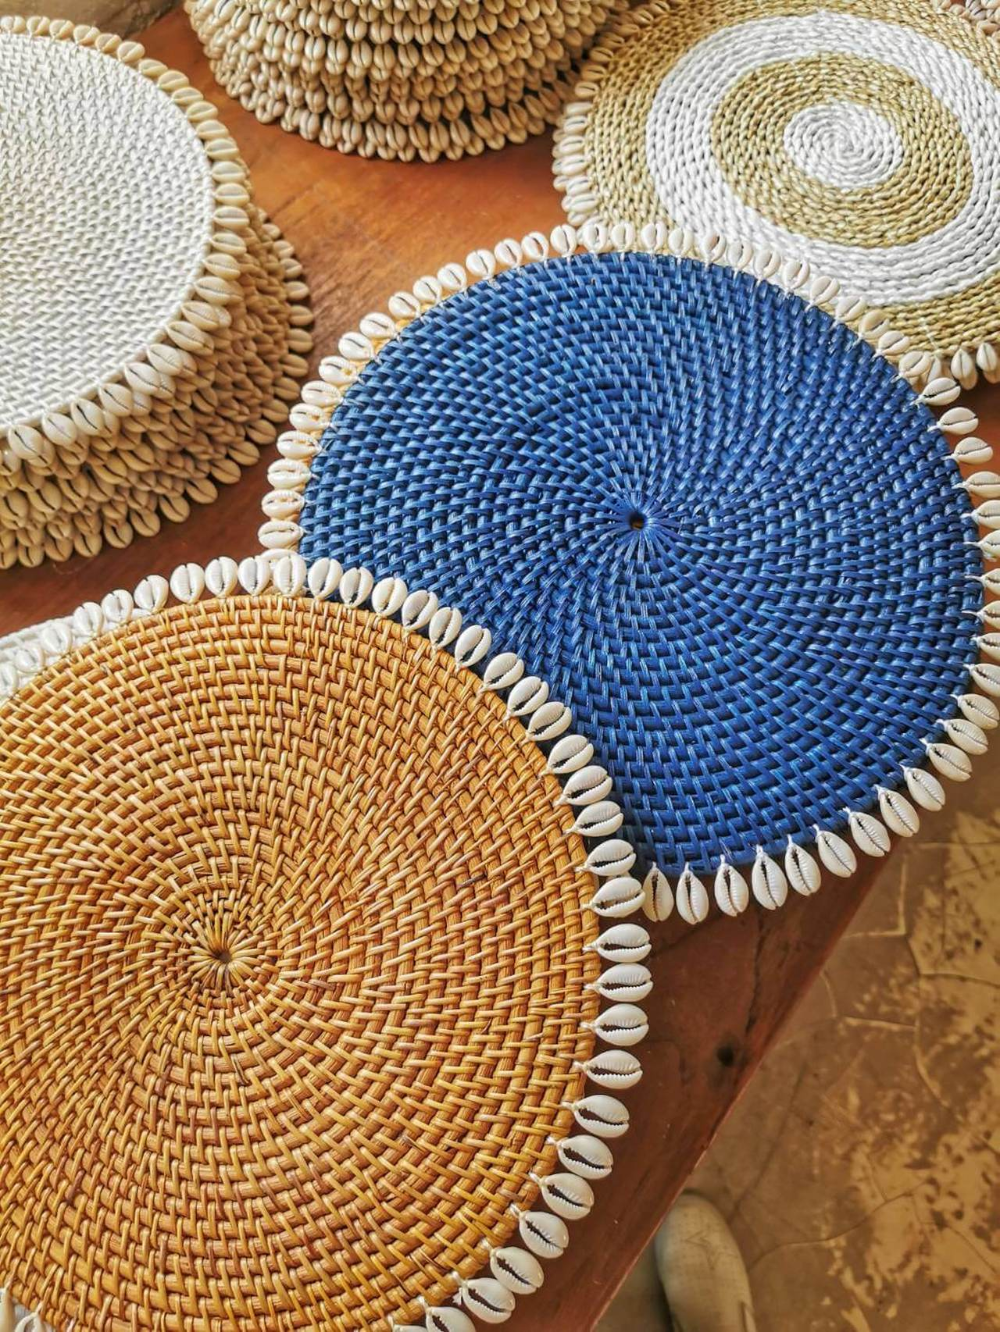 Round Rattan Placemats With Shells From Bali Set Of 4 Placemats Natural Placemats Rattan